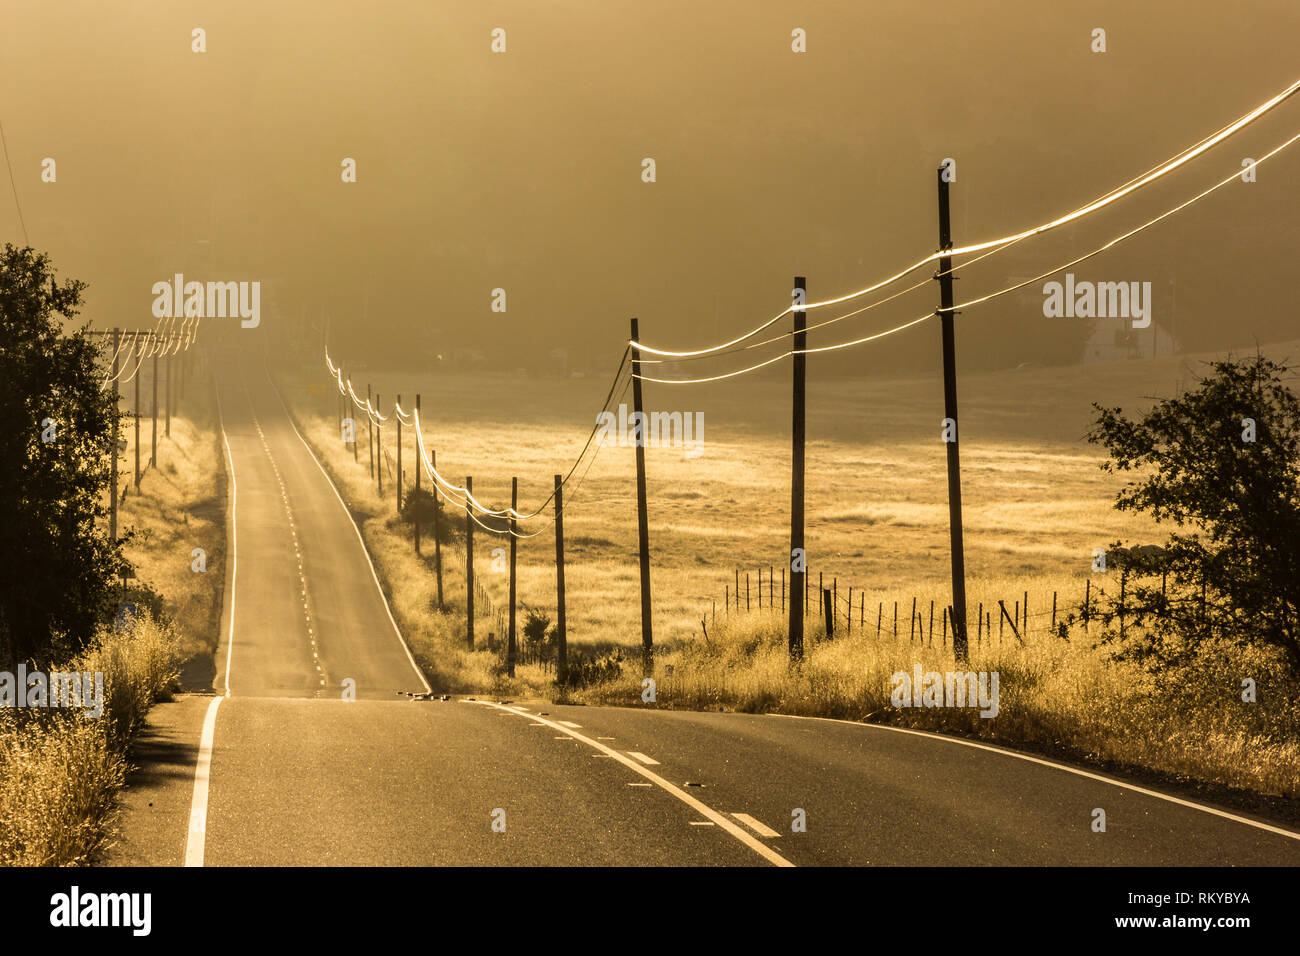 Rural hillside country road in hazy morning light lined with powerlines. - Stock Image